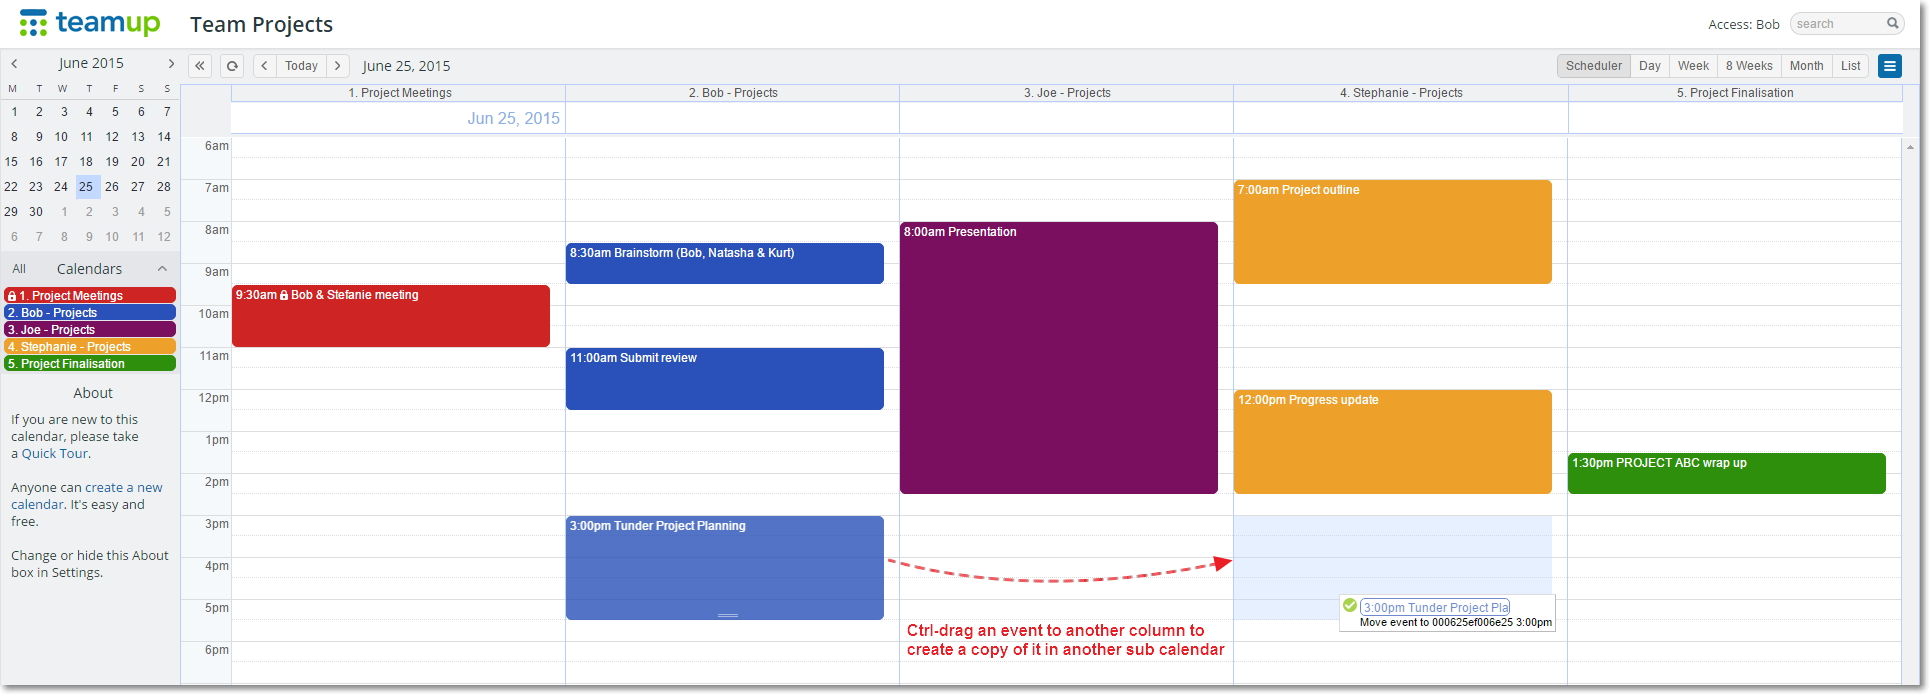 Click the image to see how to copy events in the Scheduler View